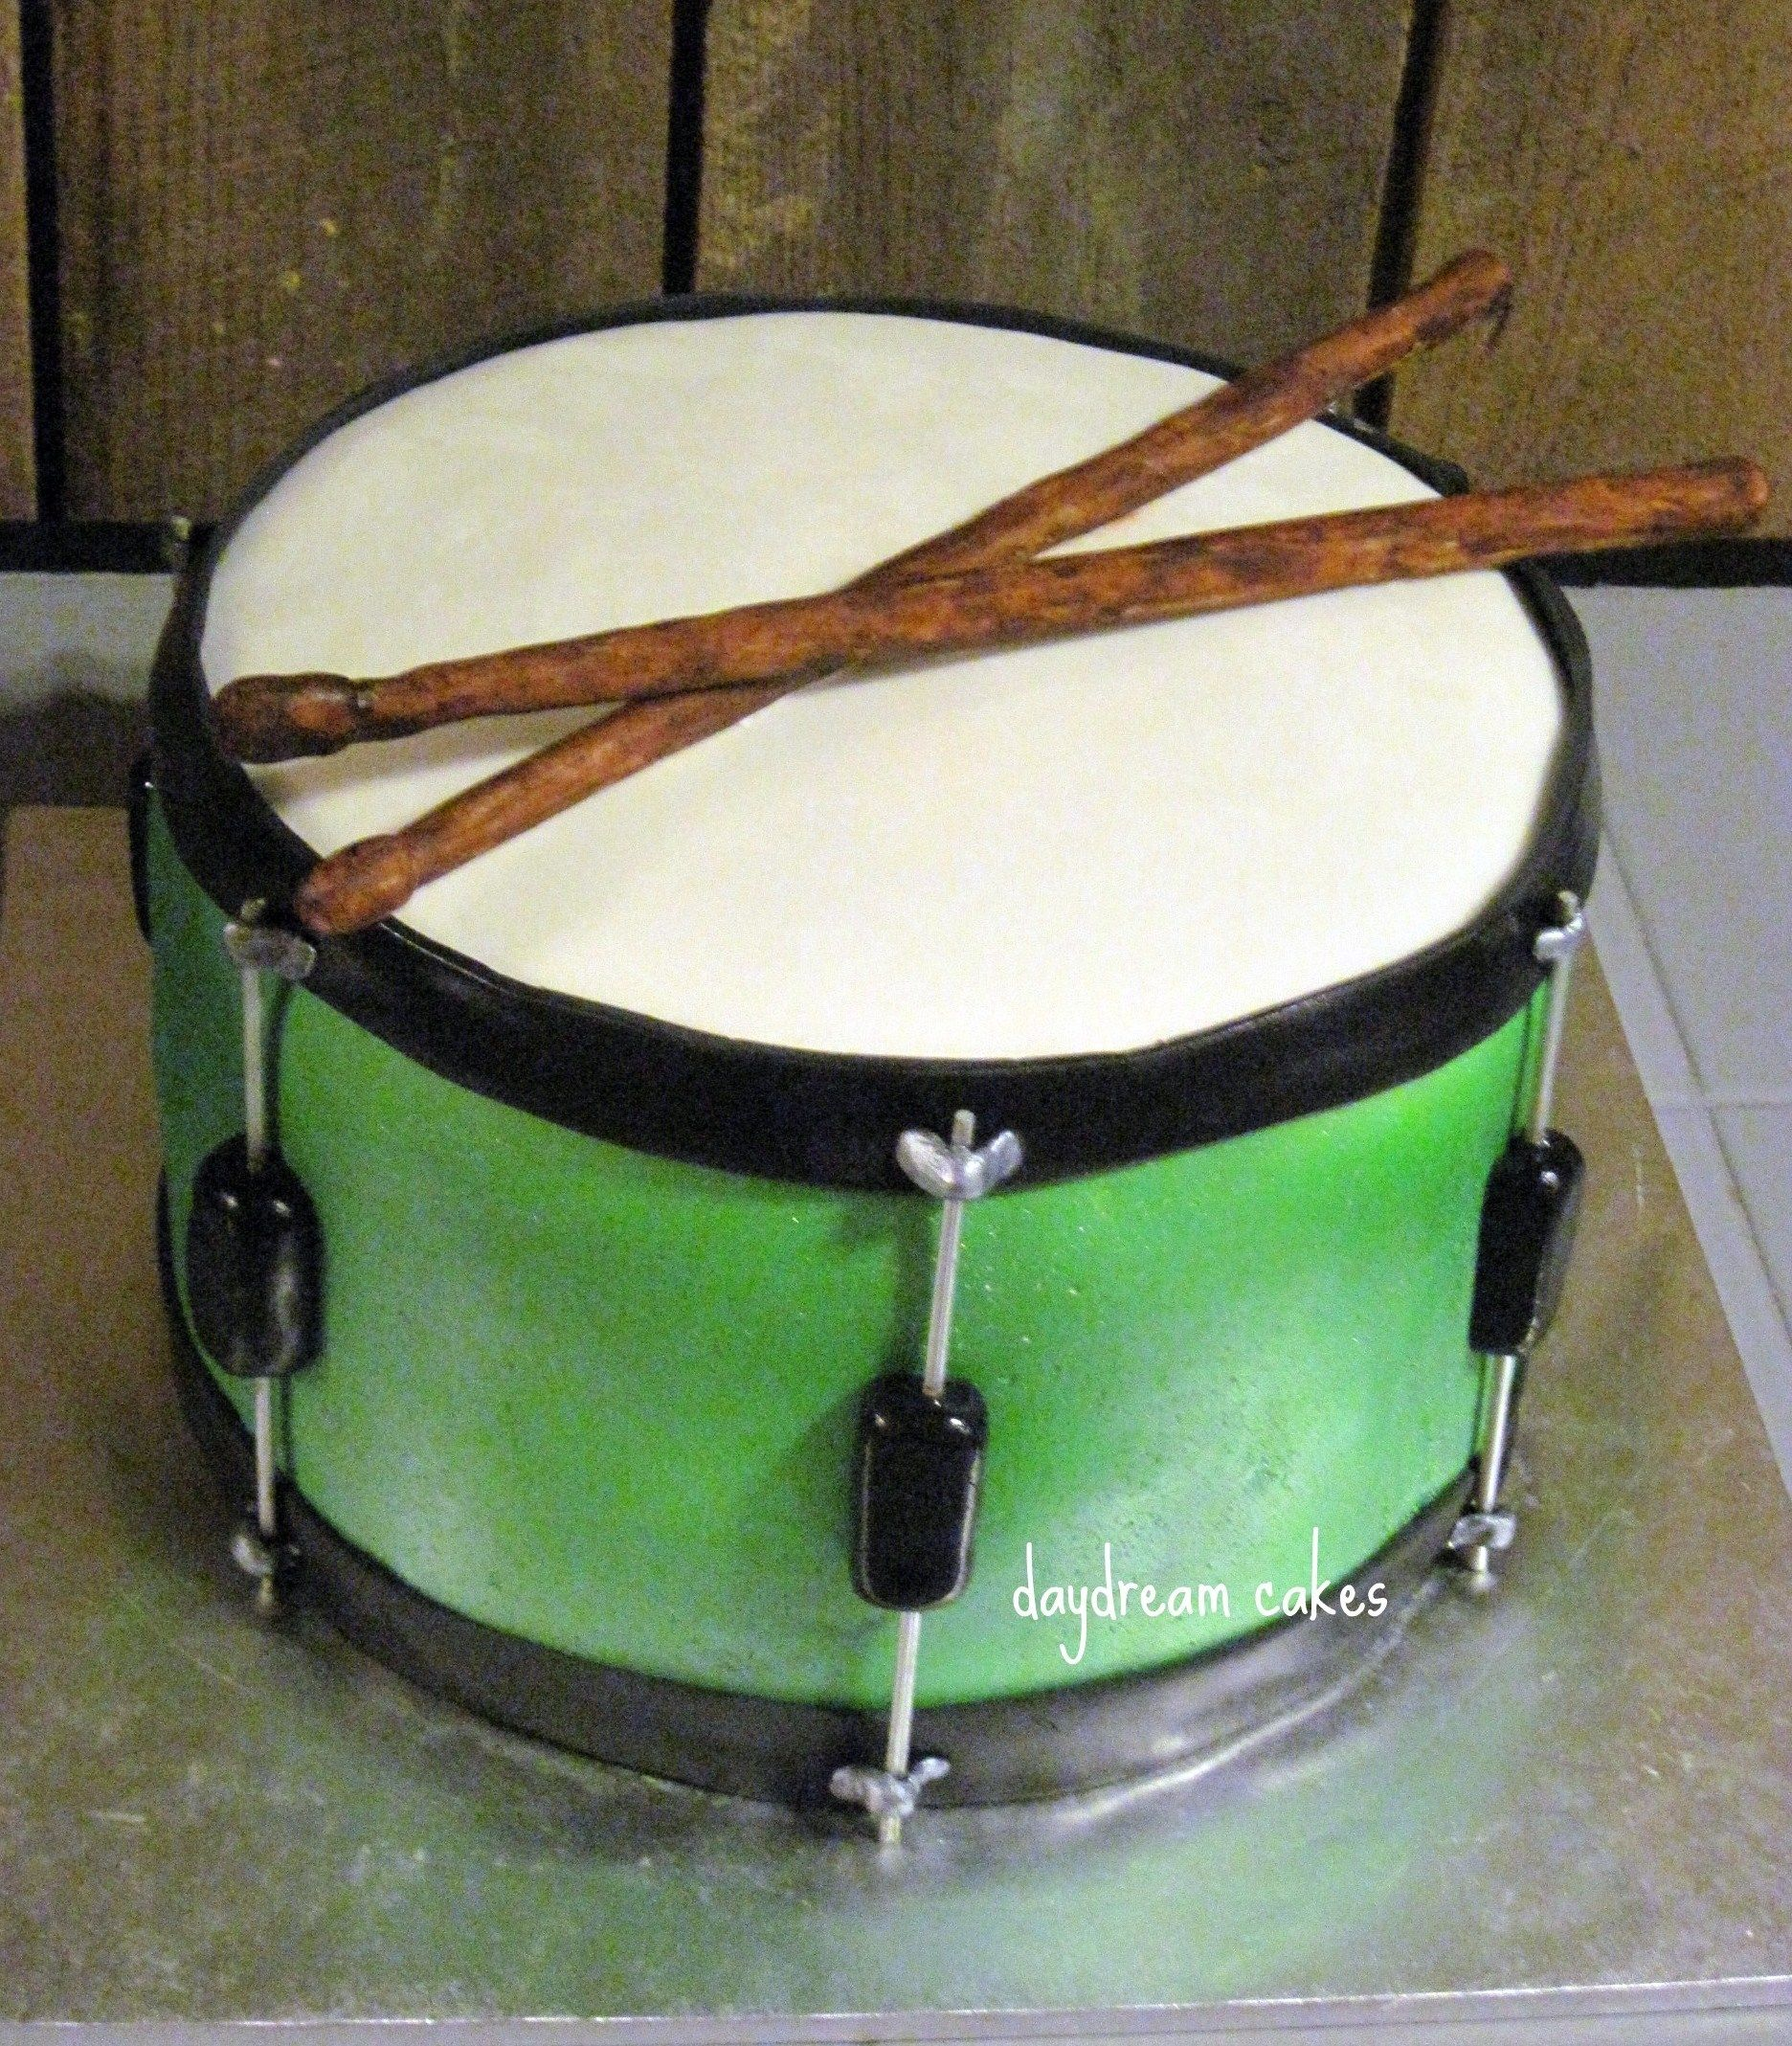 Drum Cake Chocolate cake for a young man who asked for a set of